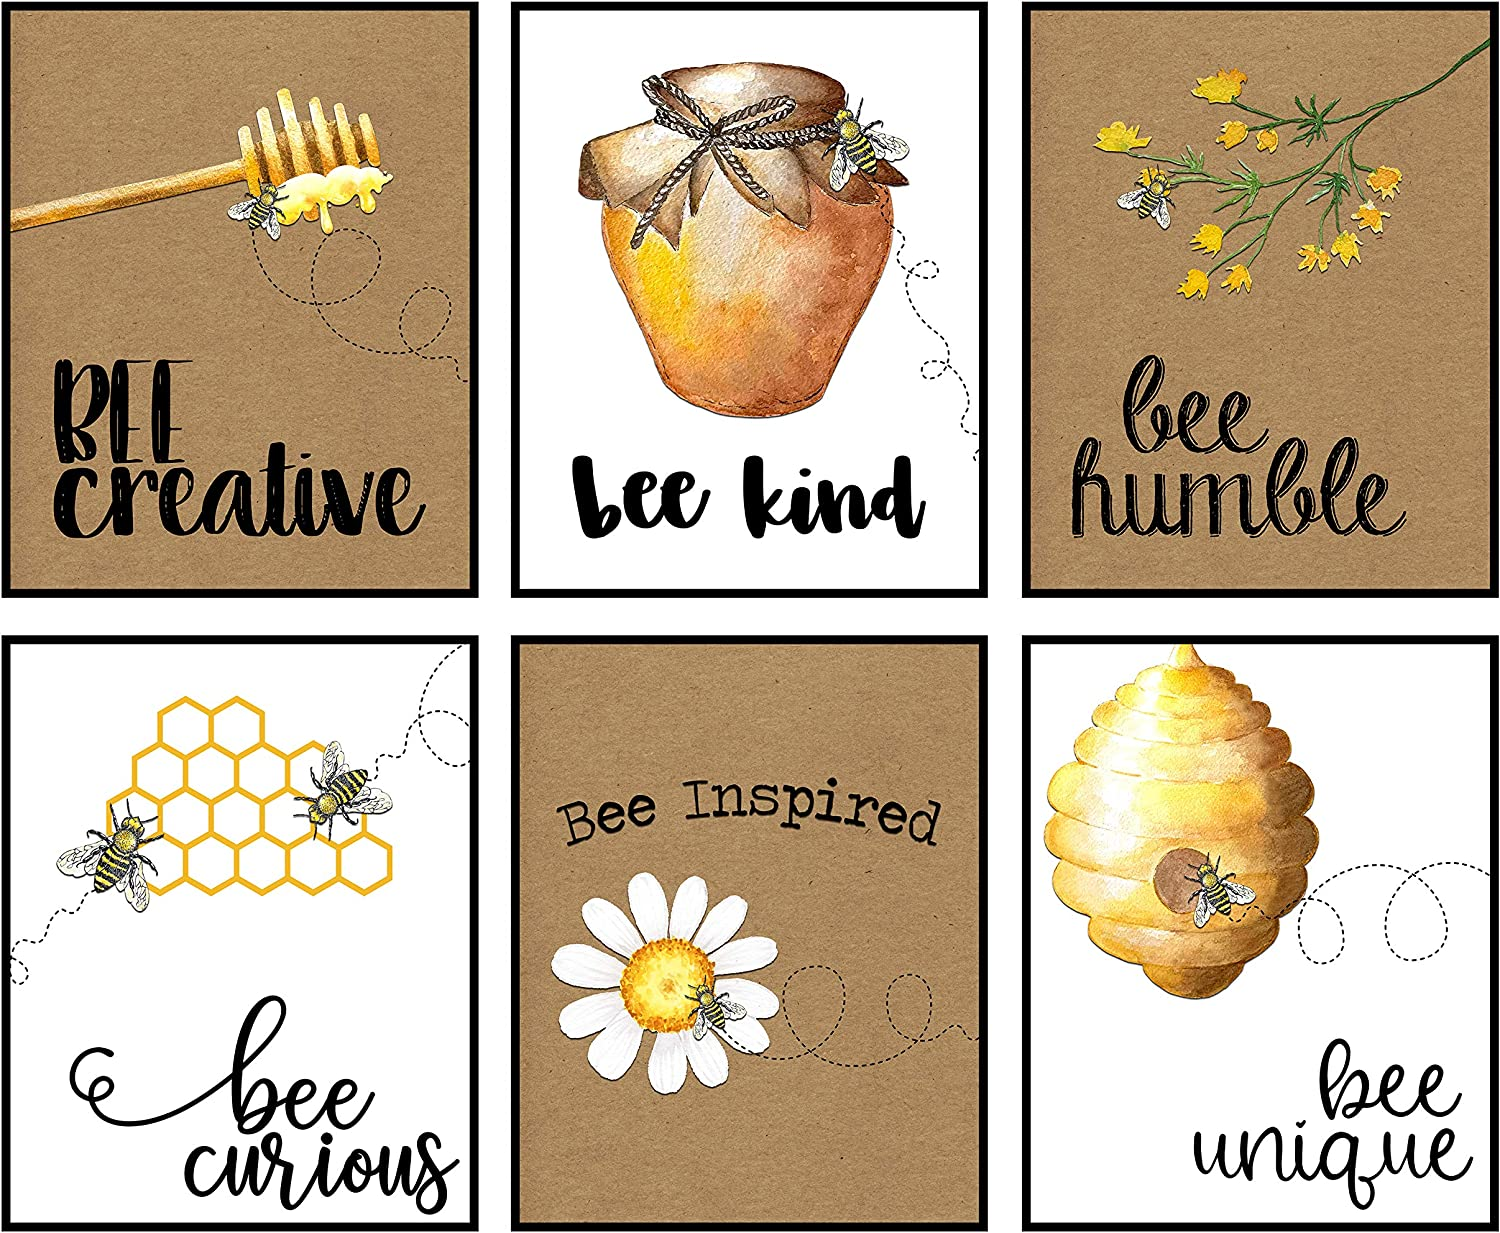 Silly Goose Gifts Home is Where Your Honey is - Art Print Watercolor Design Wall Room Home Bathroom Decor Set - Bee A Nice Human (Bee Kind)